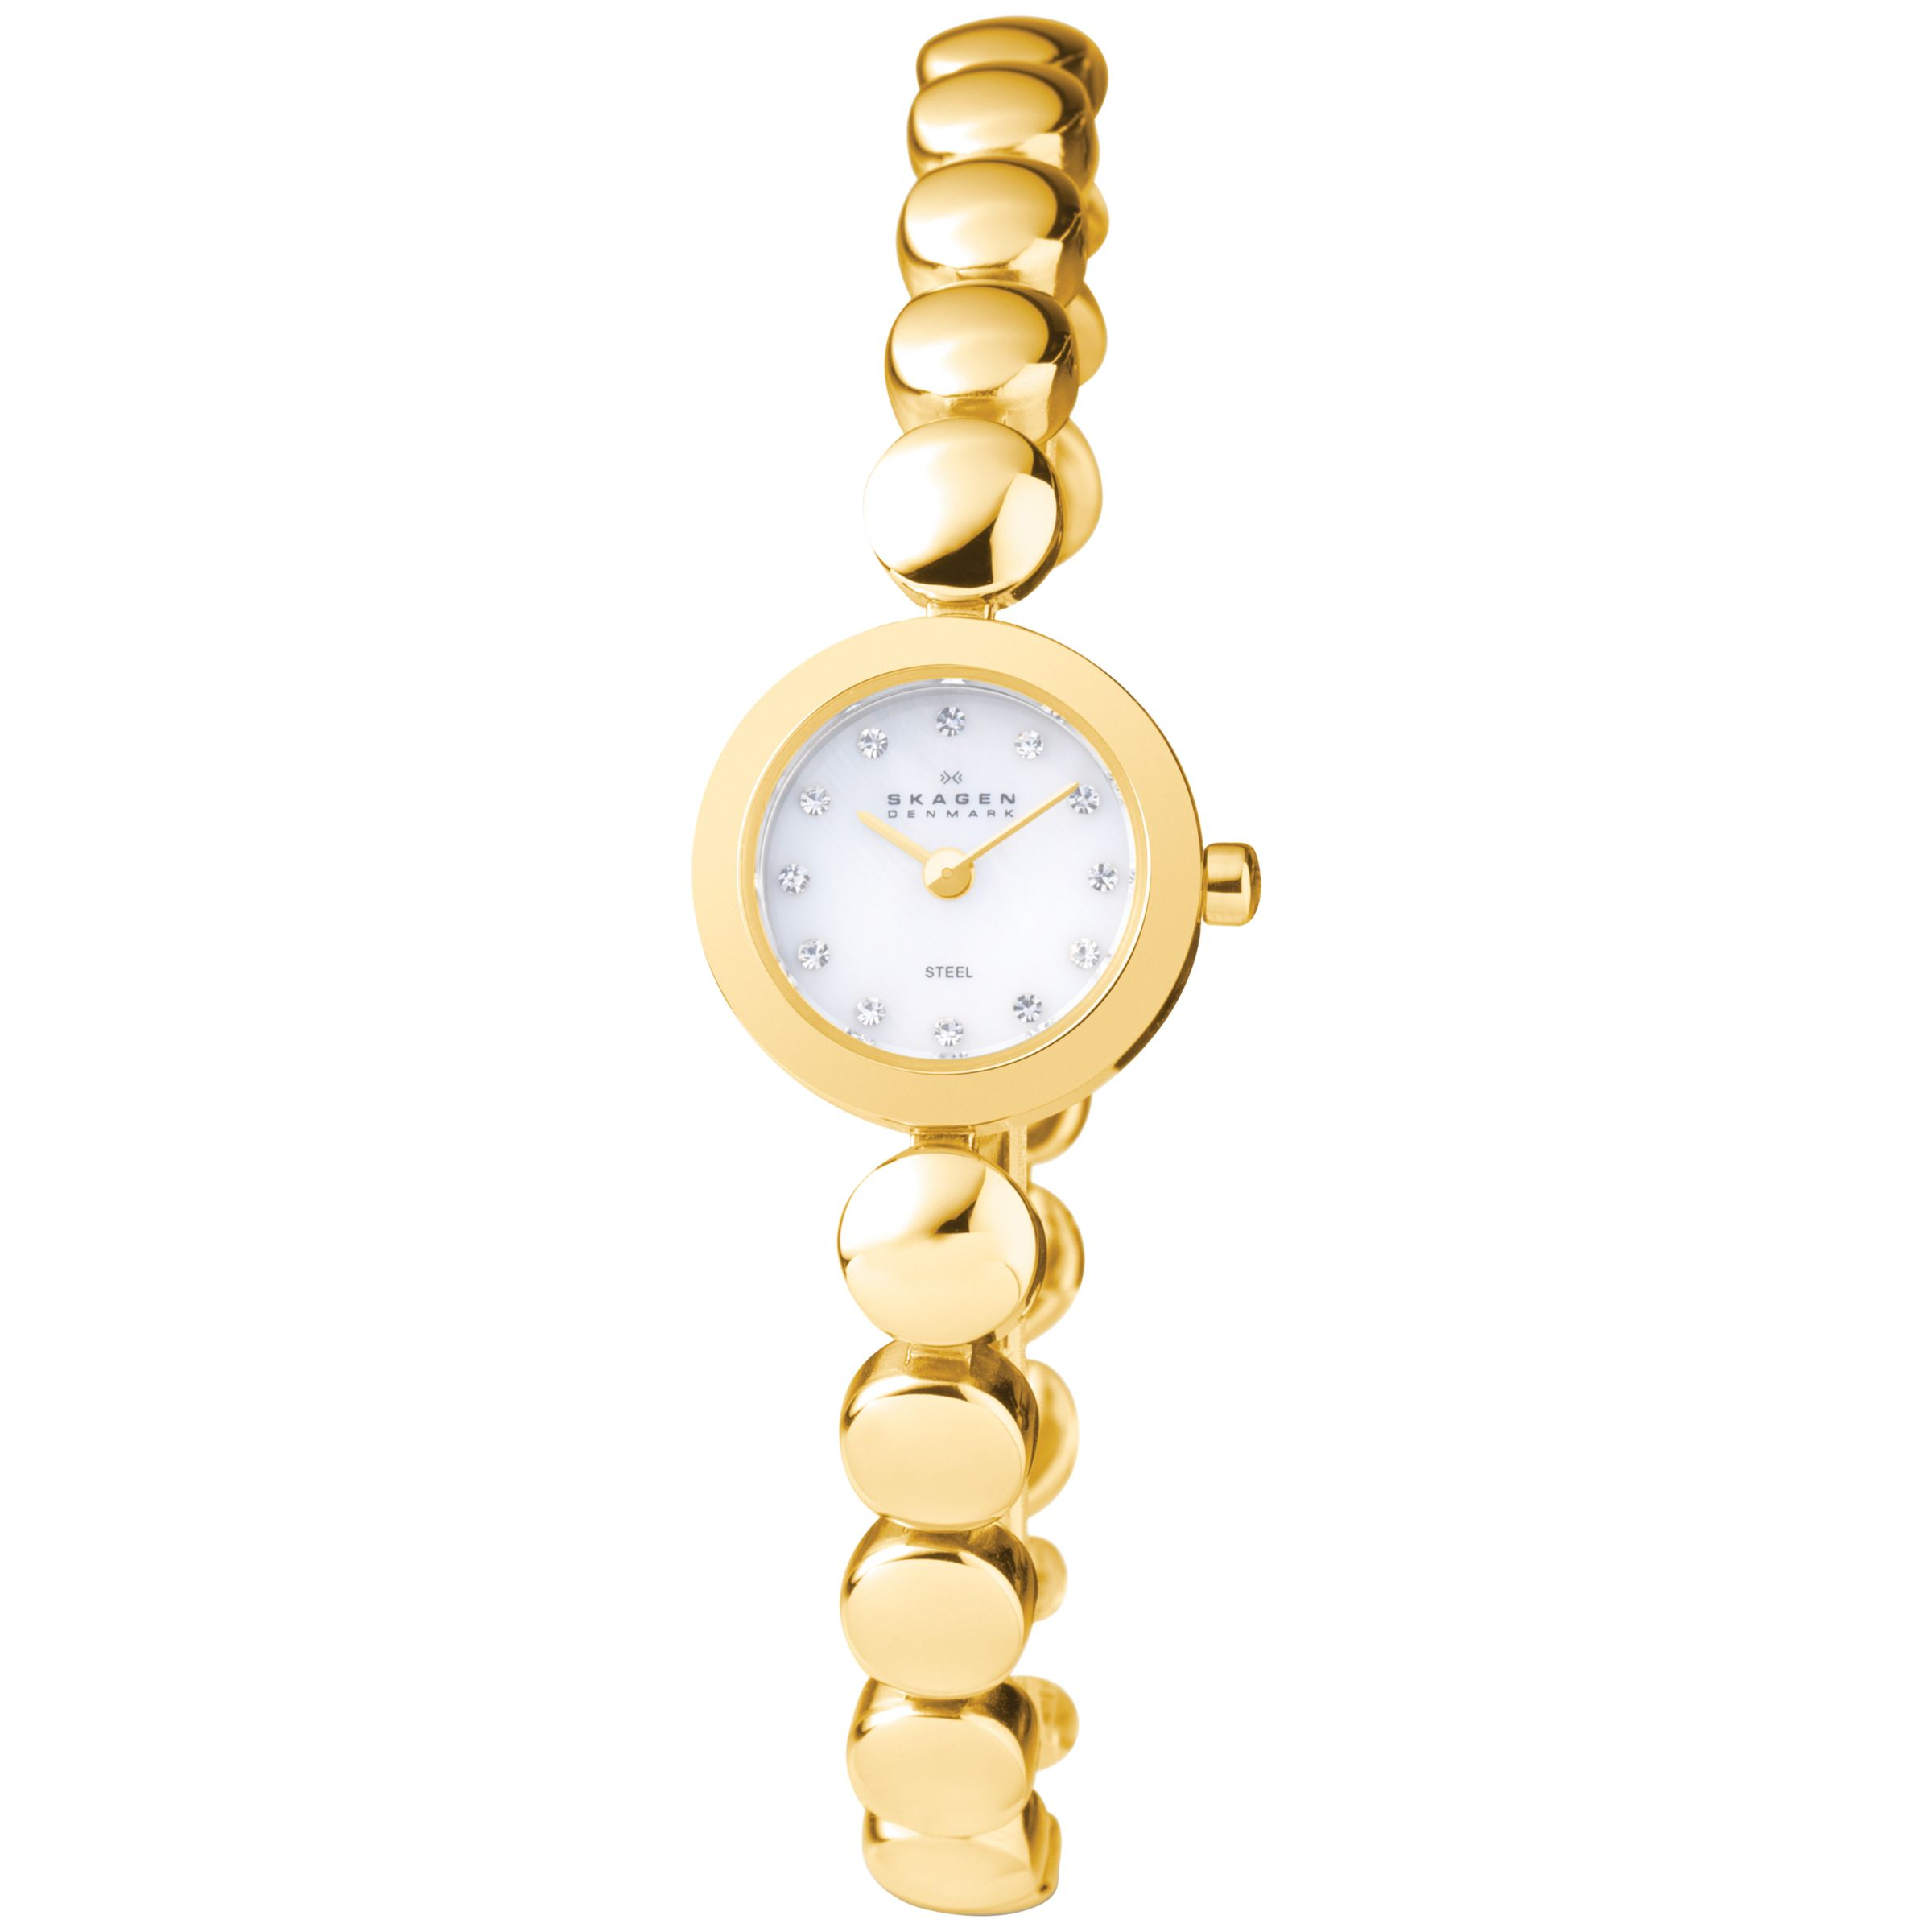 dial steiner ladies watch diamond accented august swiss bracelet chain pin link watches quartz